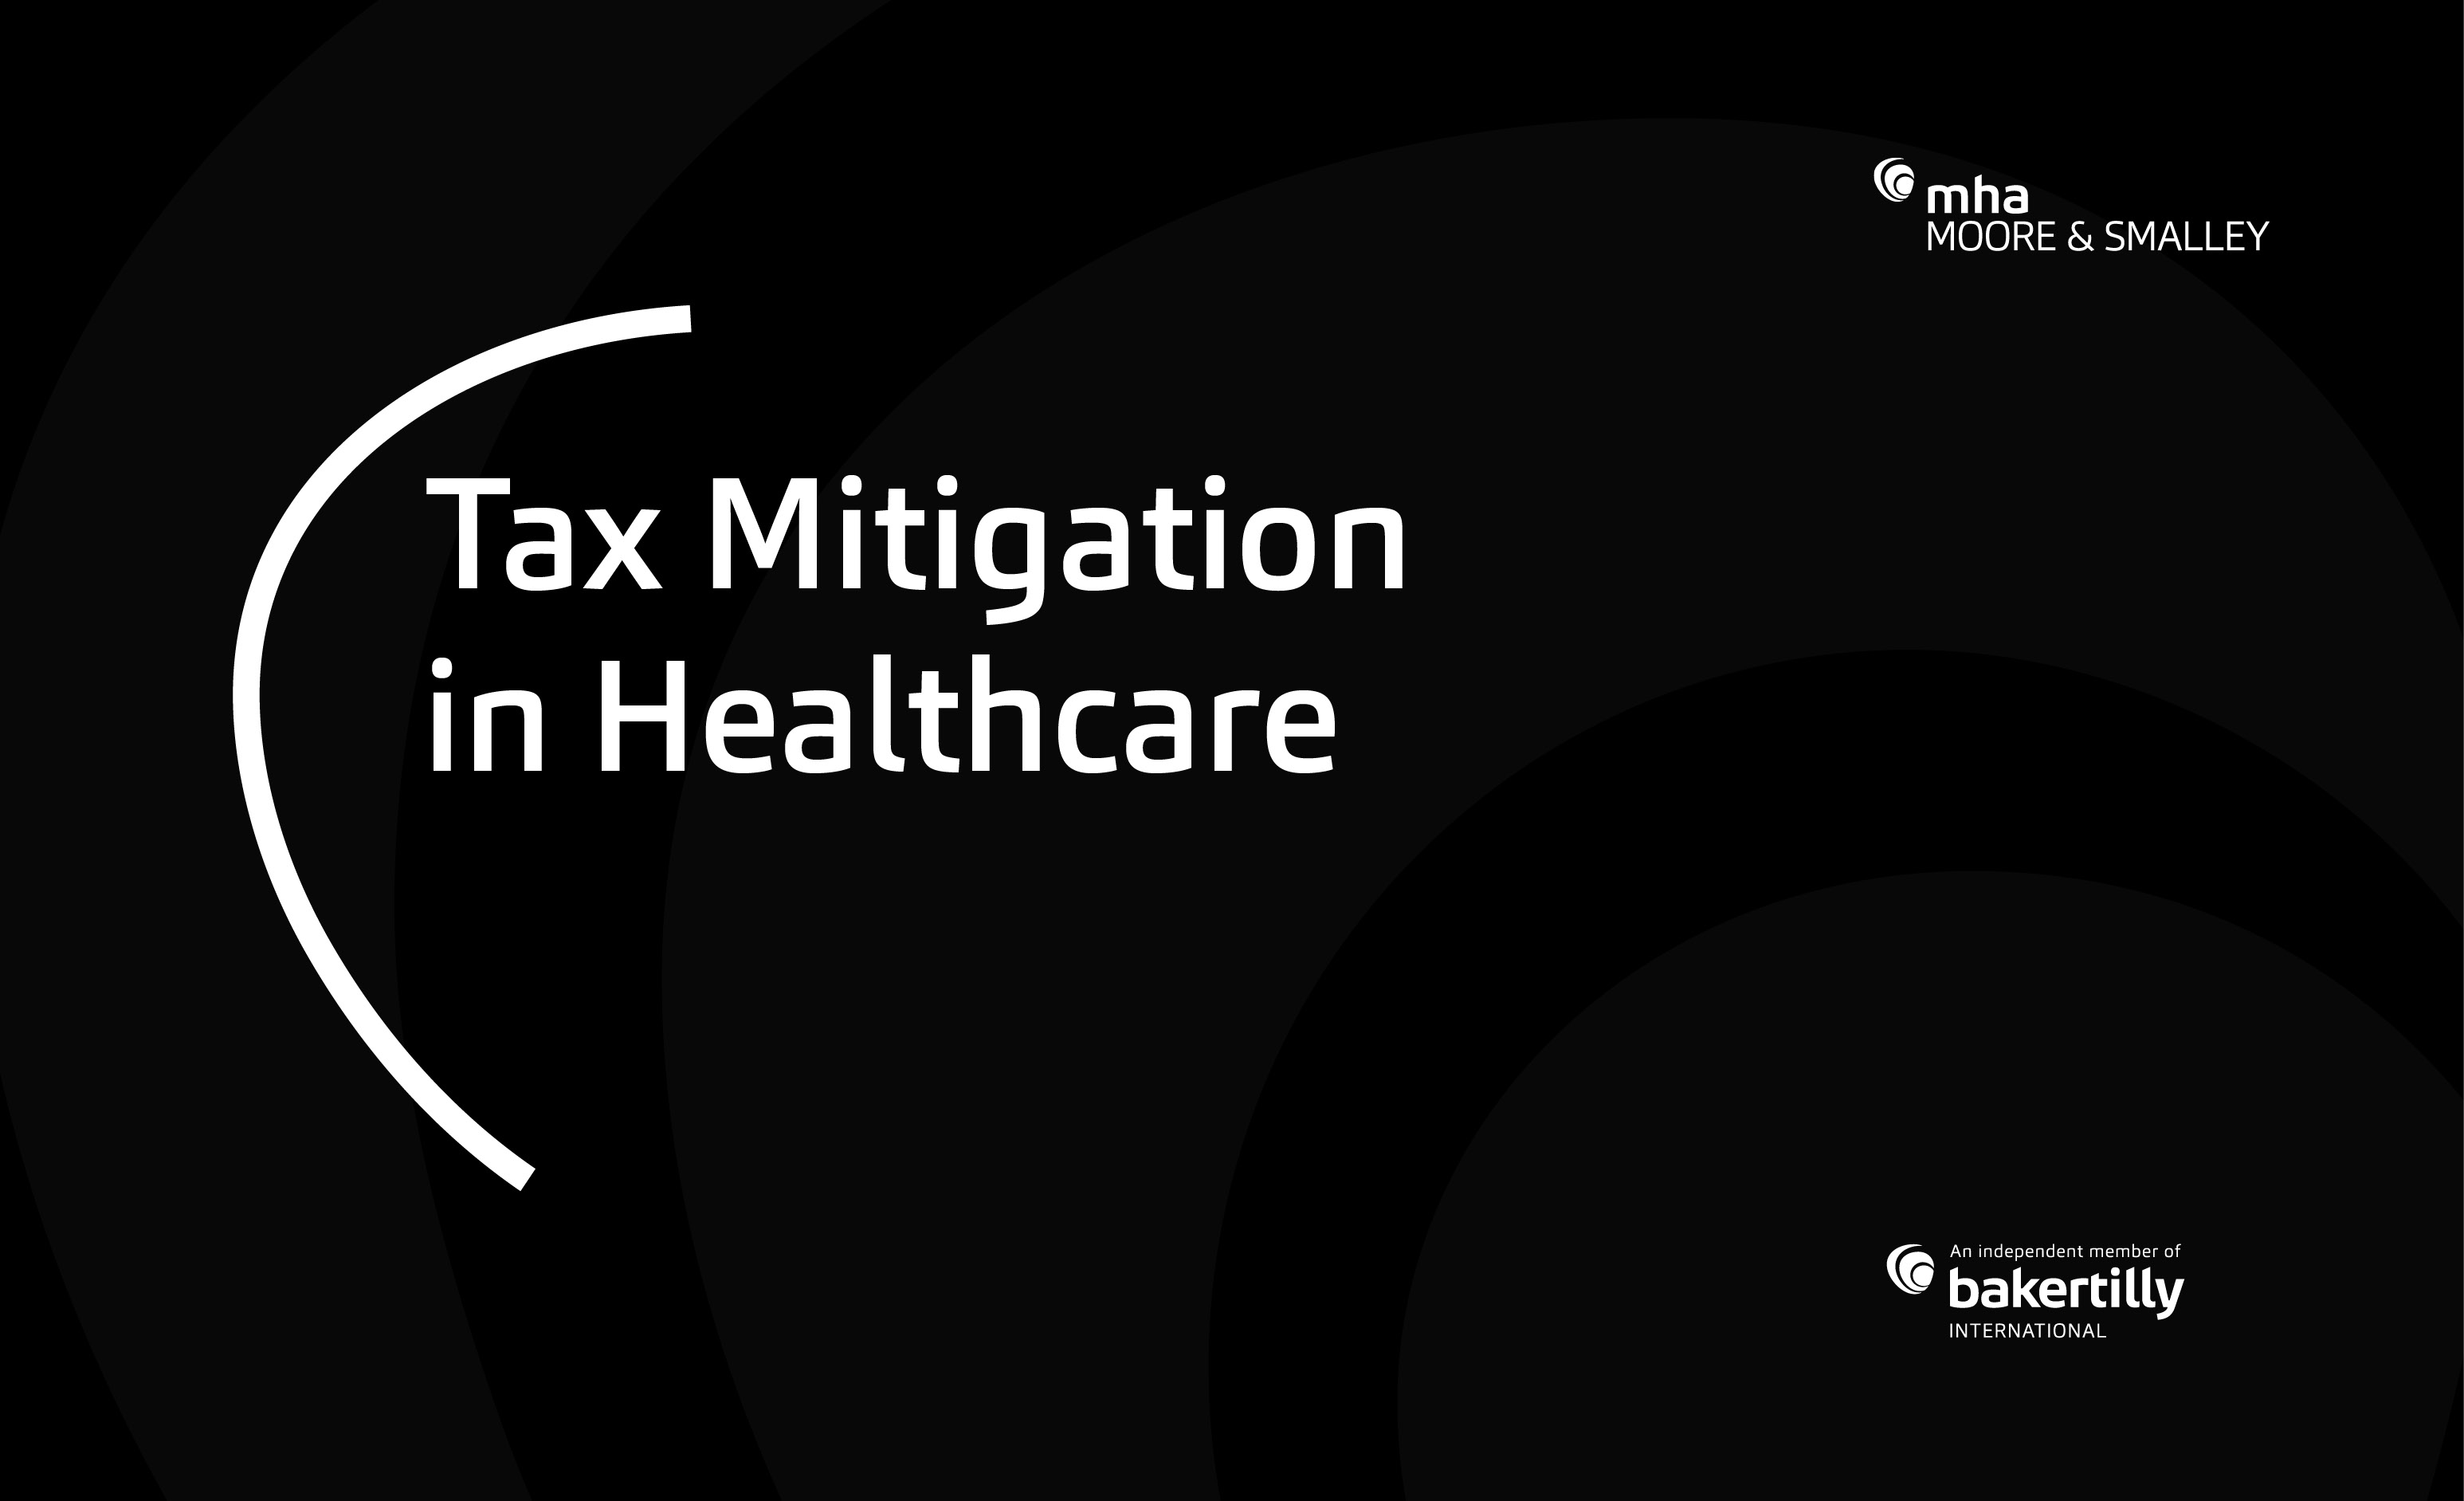 Tax Mitigation in Healthcare